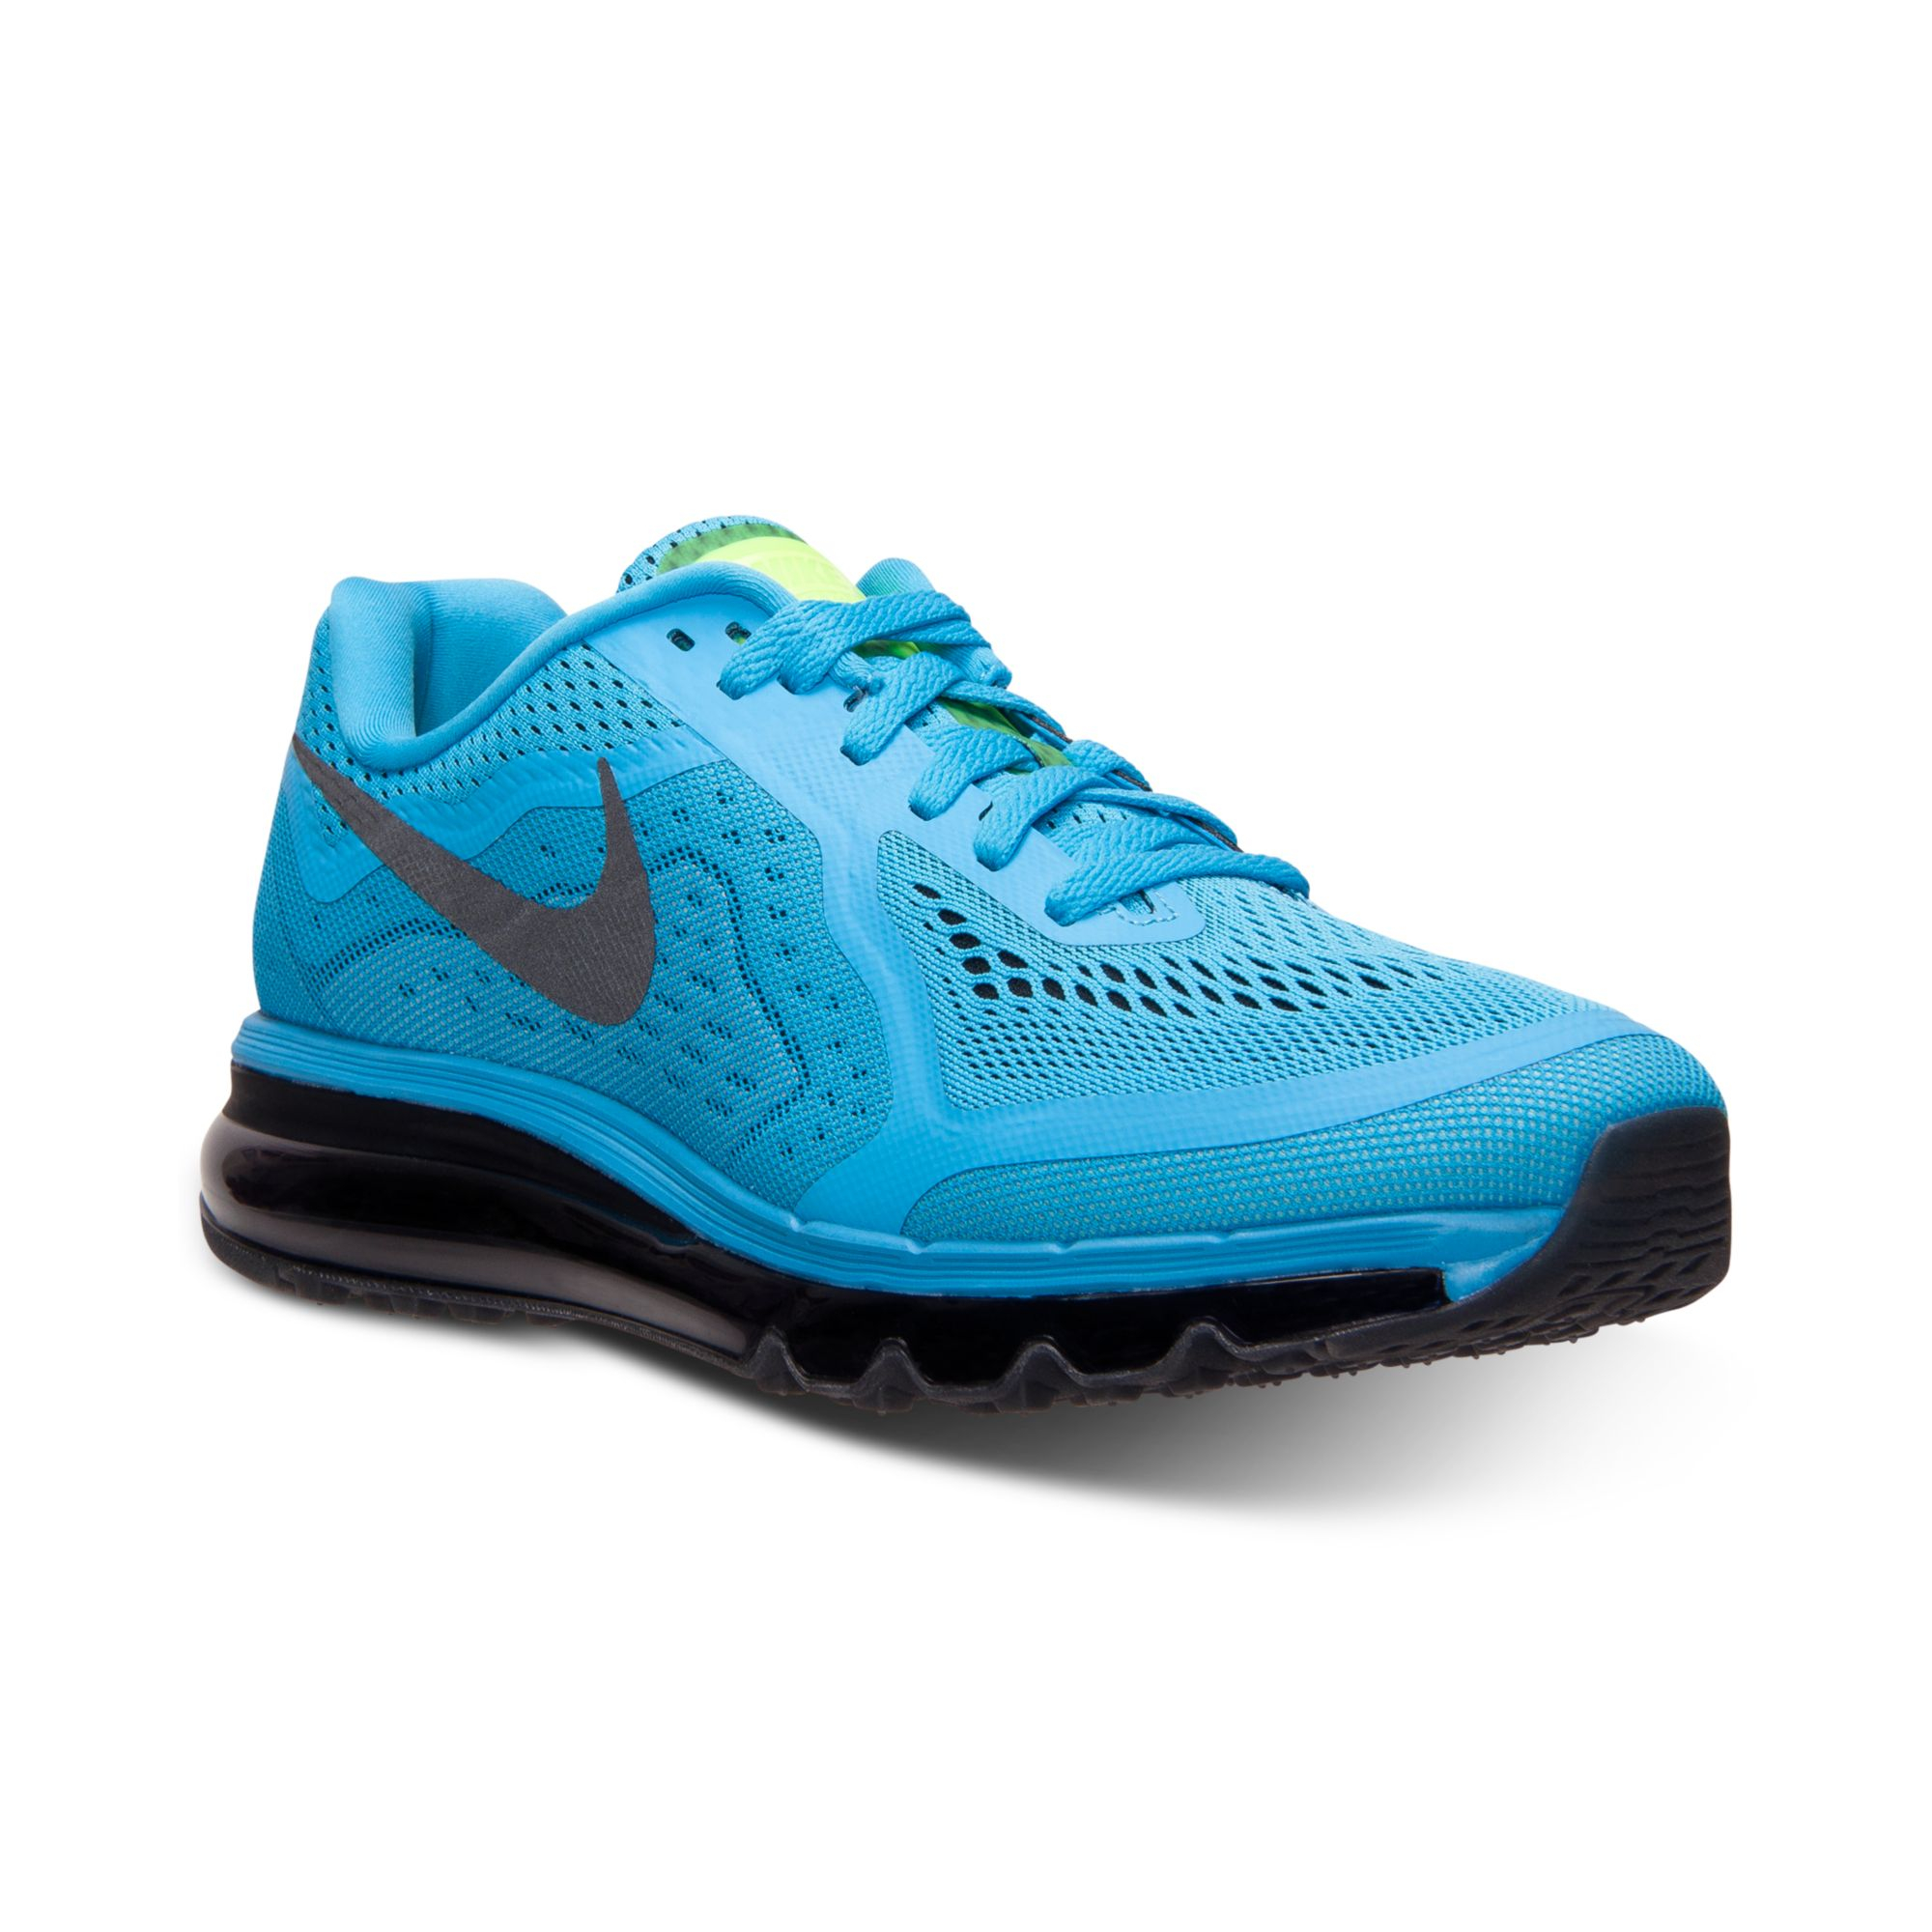 nike blue mens air max 2014 running sneakers from finish line product